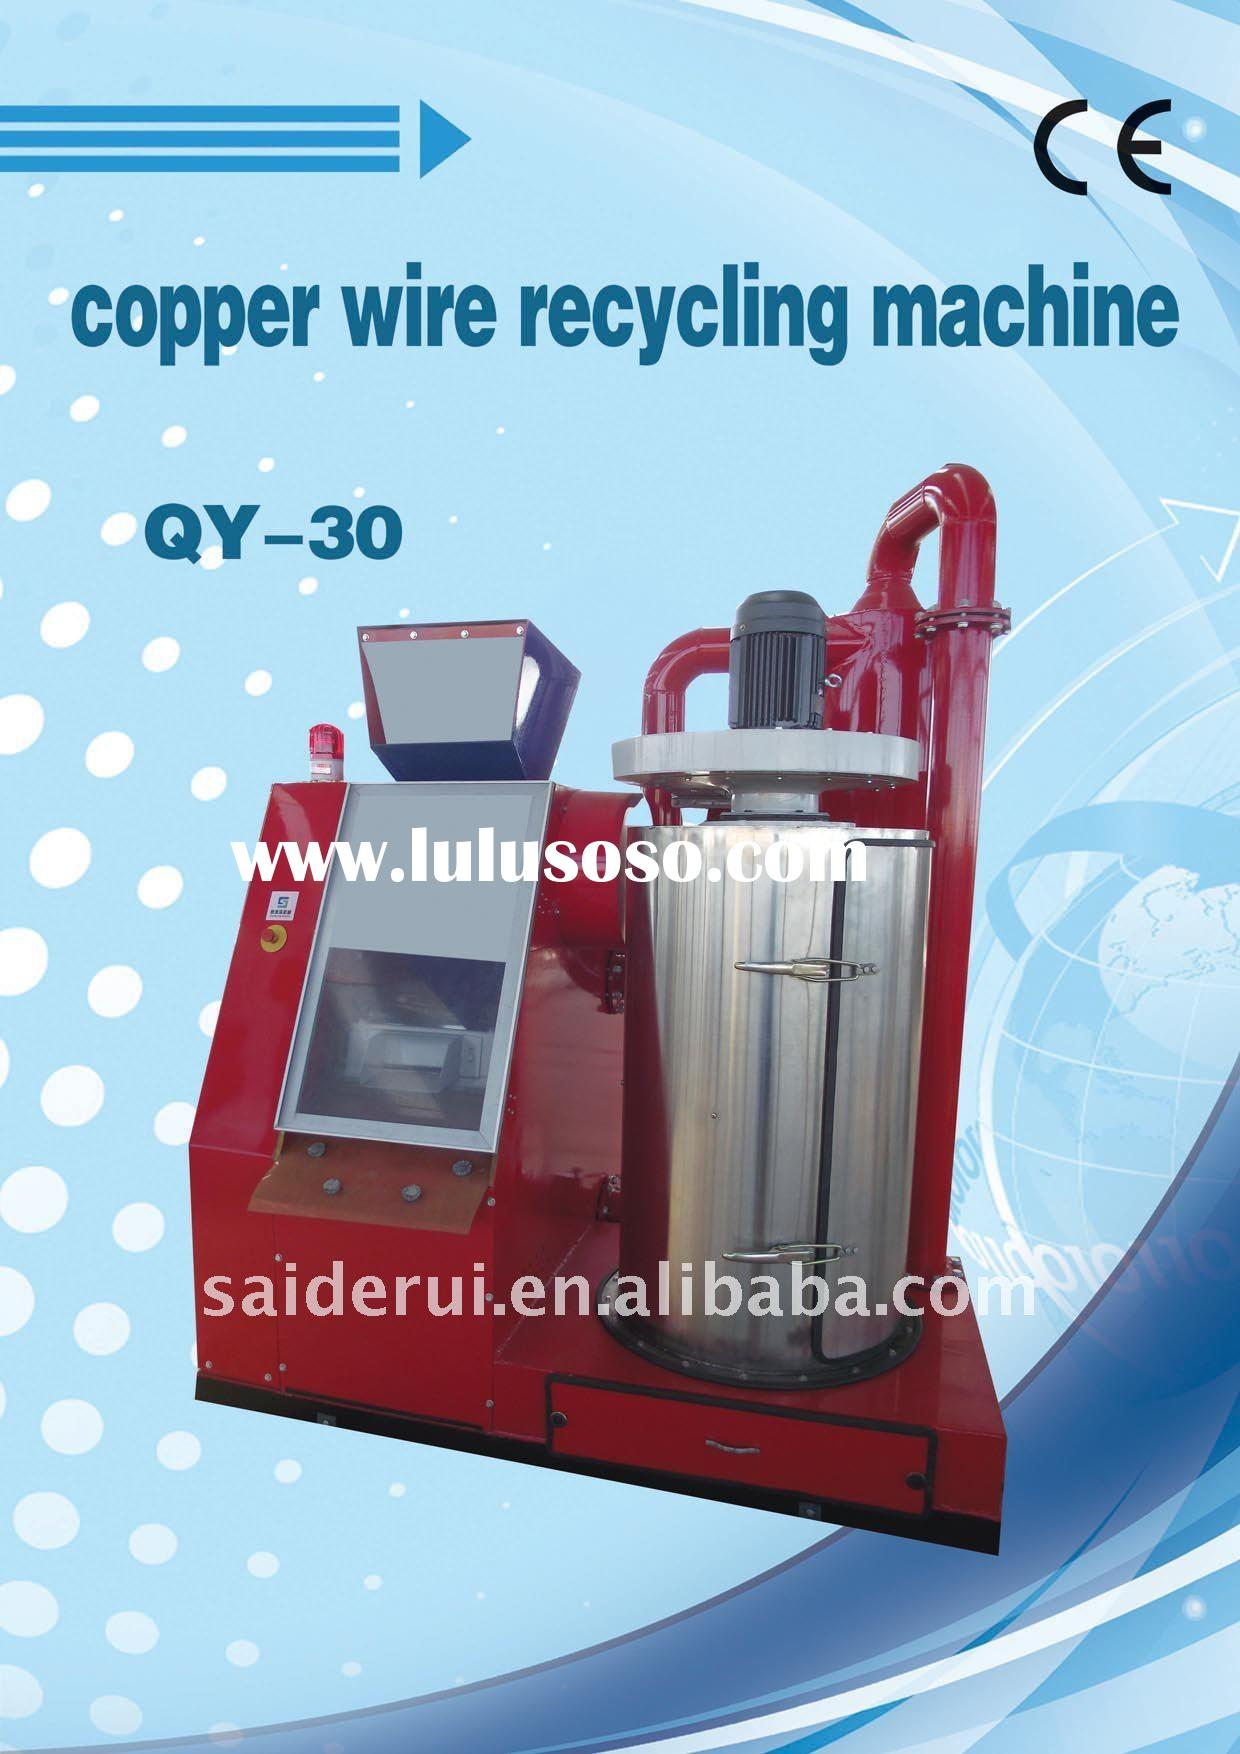 scrap wire recycling system, copper cable shredder and separator,wire granulator